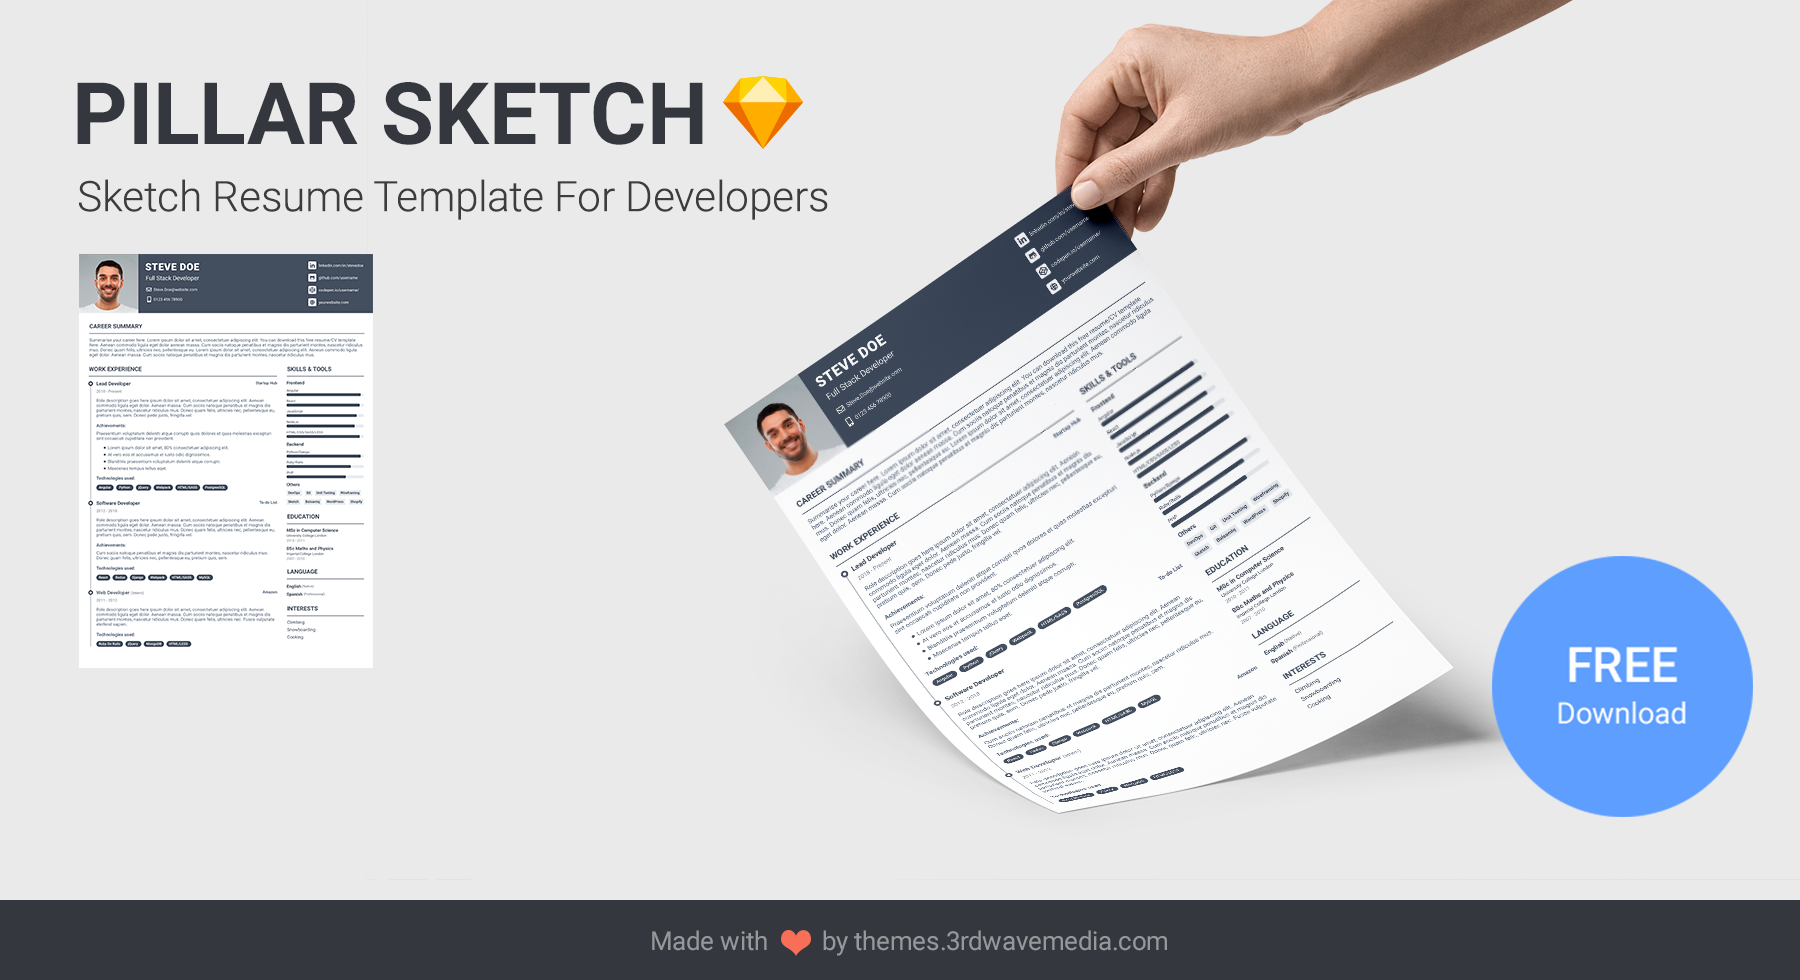 Pillar Sketch - Sketch Resume/CV Template for Developers